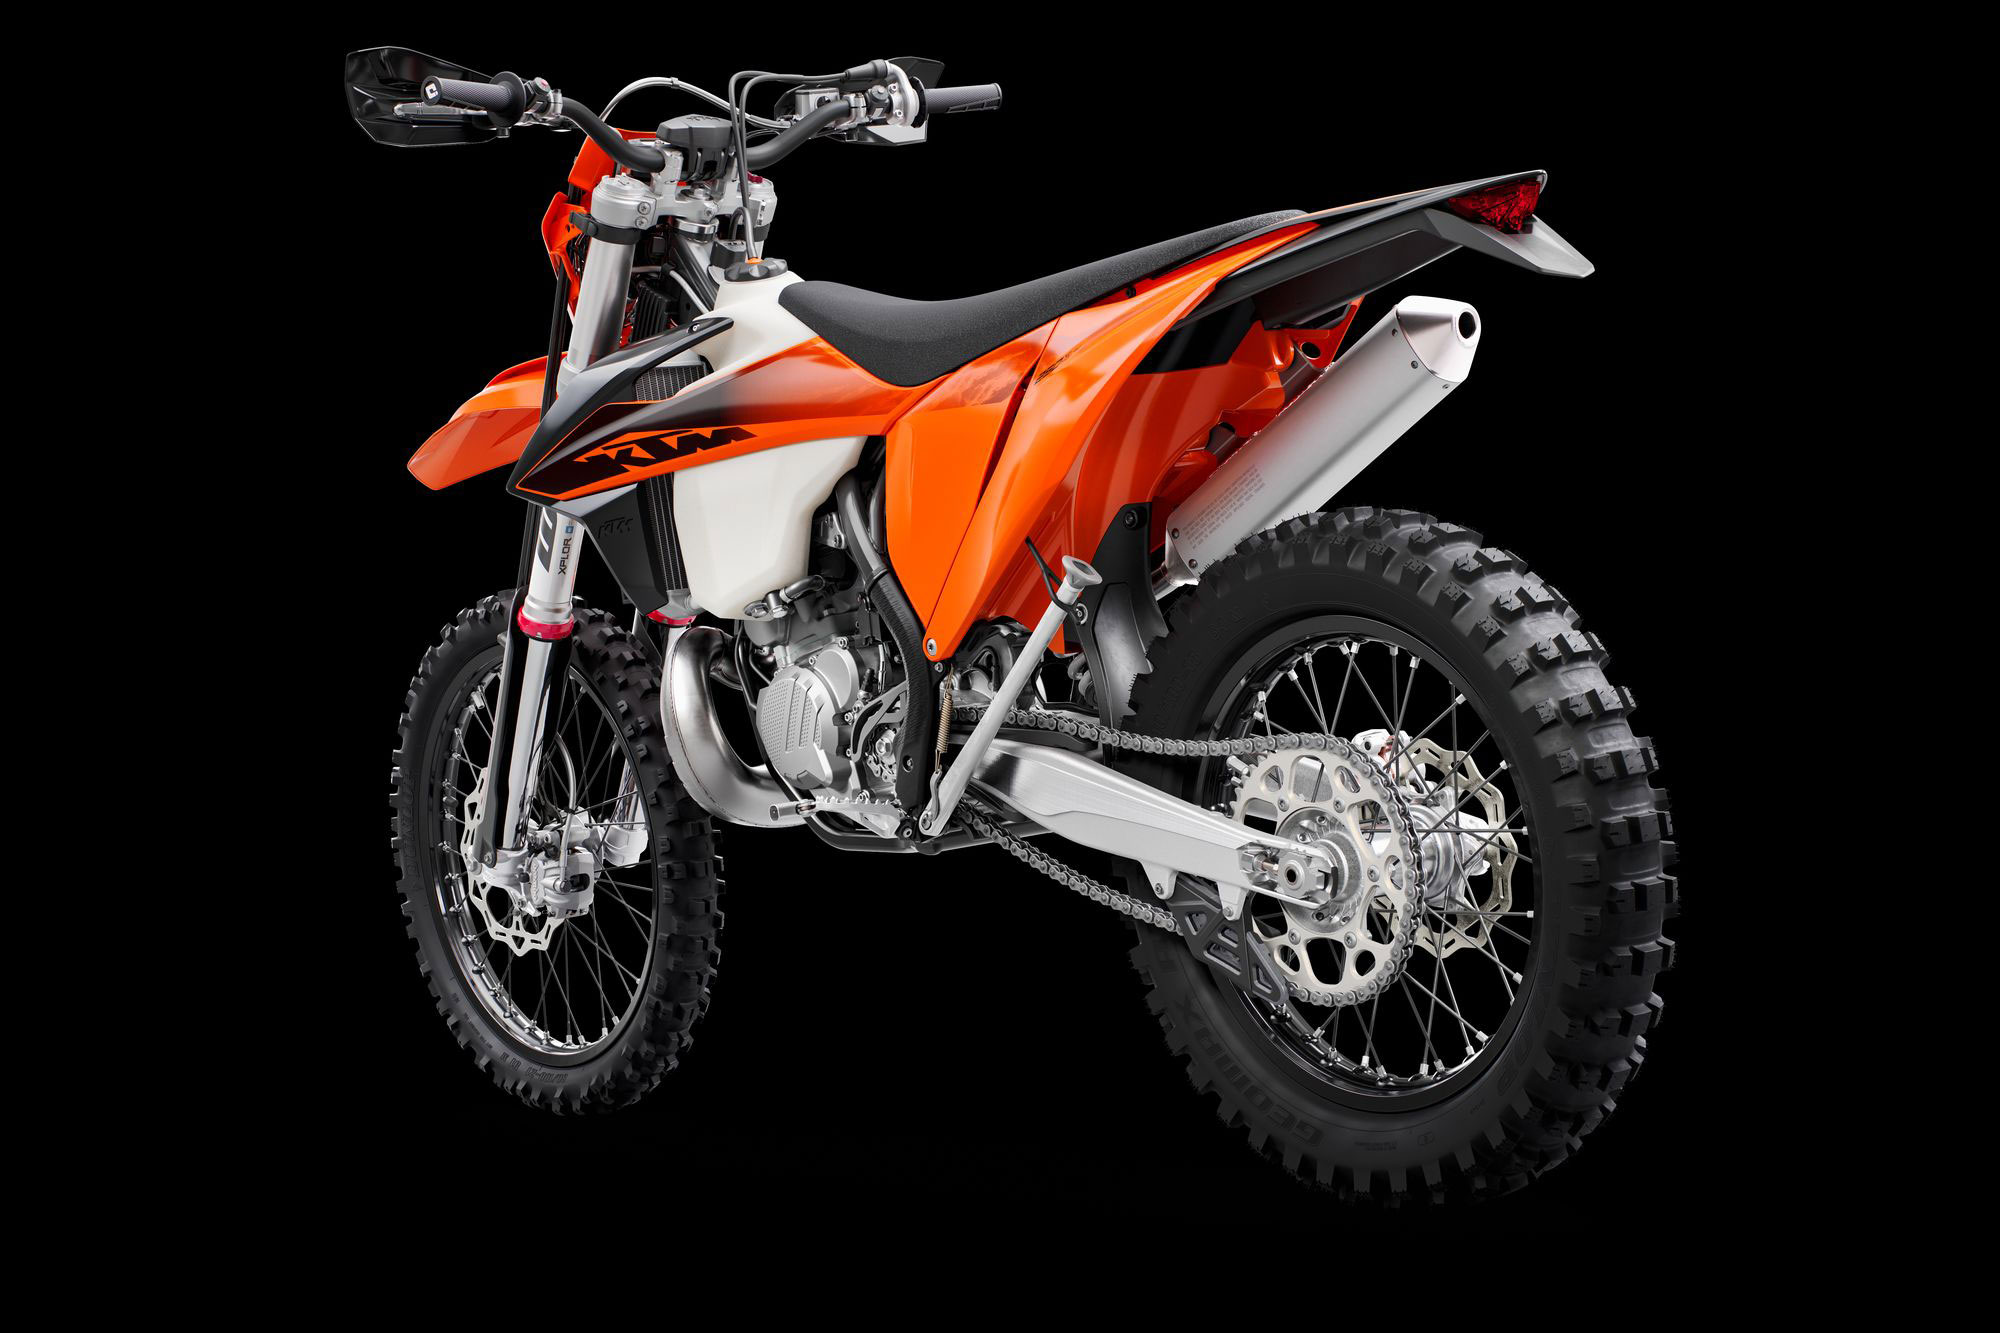 2020 Ktm 250 Xc W Tpi Guide Total Motorcycle